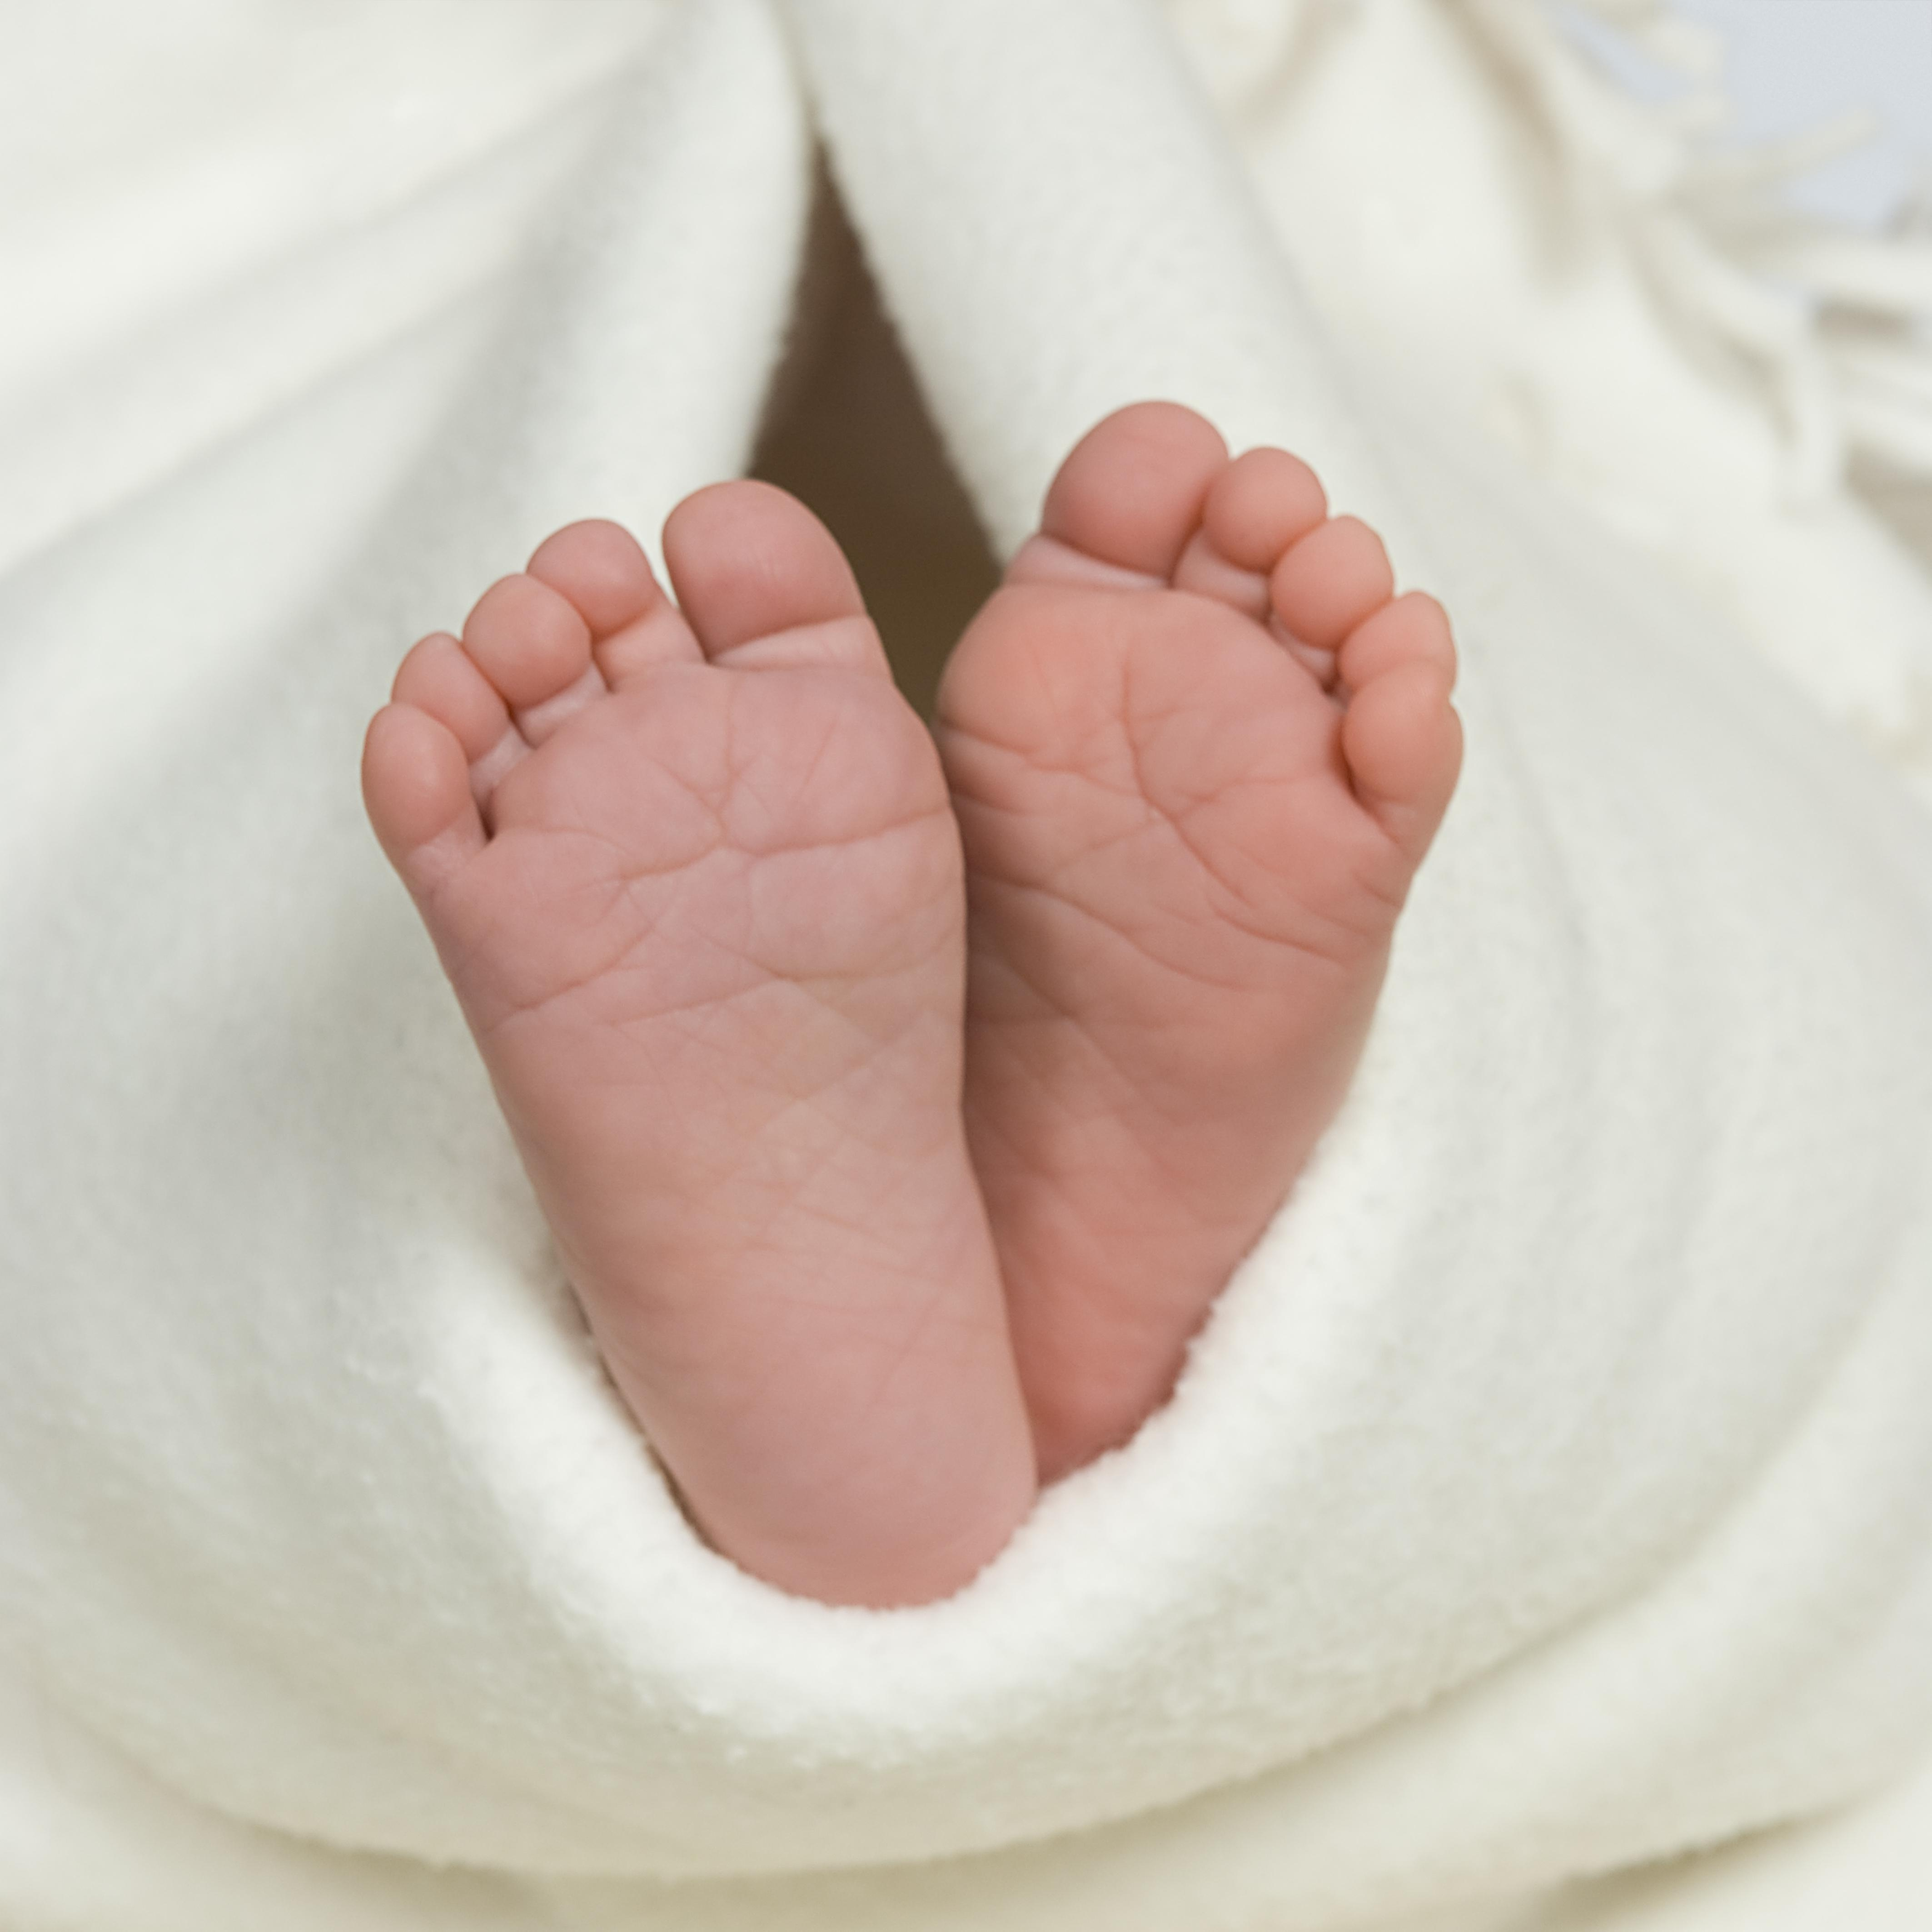 Pair of baby's feet poking out from blanket, close-up